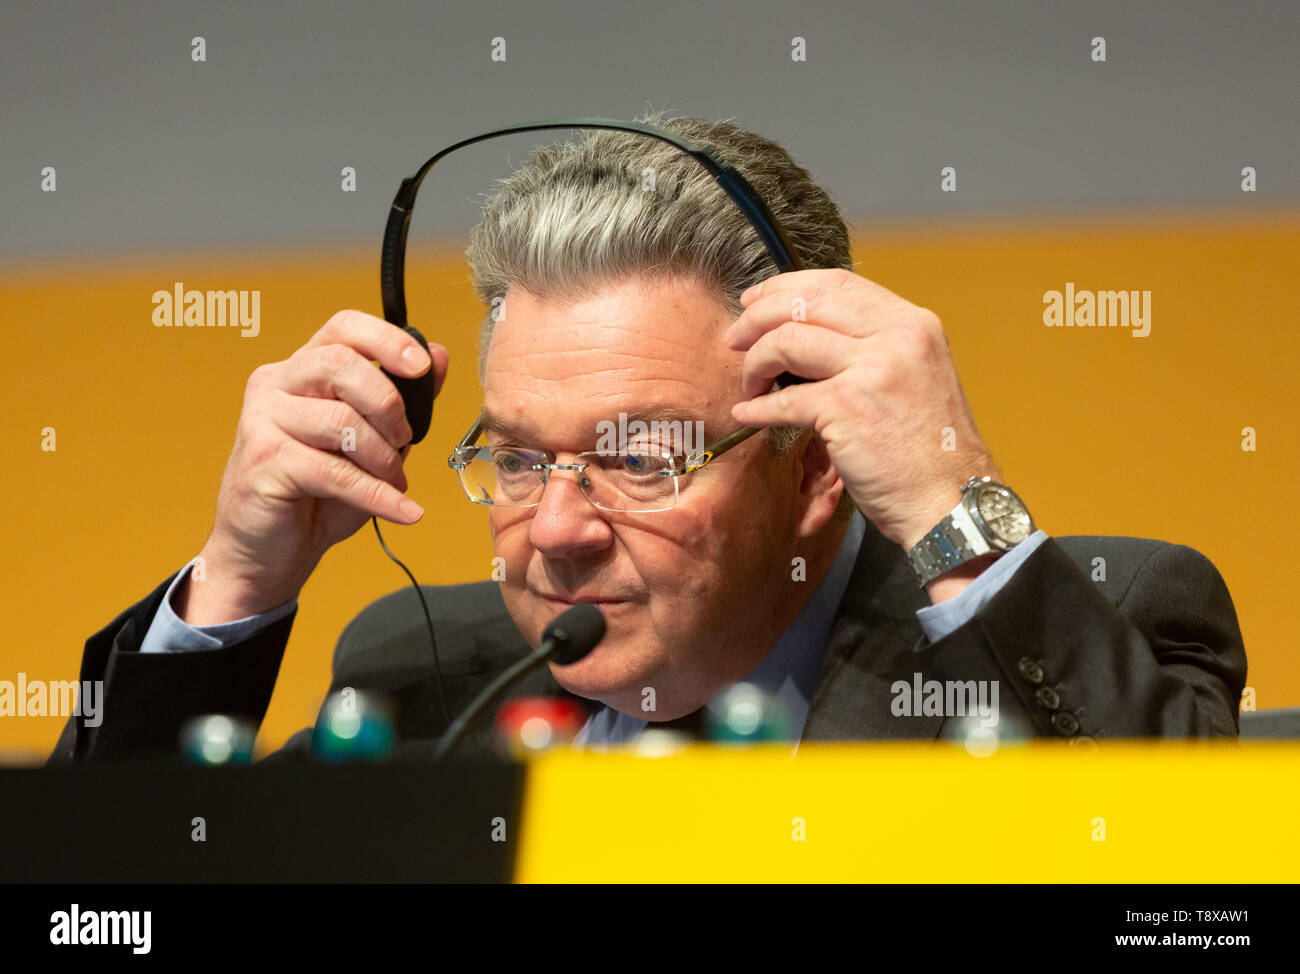 Bonn, Deutschland. 15th May, 2019. Germany, Bonn, May 5 2019, Deutsche Post DHL Annual General Meeting: Member of the executive board John Pearson. Credit: Juergen Schwarz/Alamy Live News - Stock Image